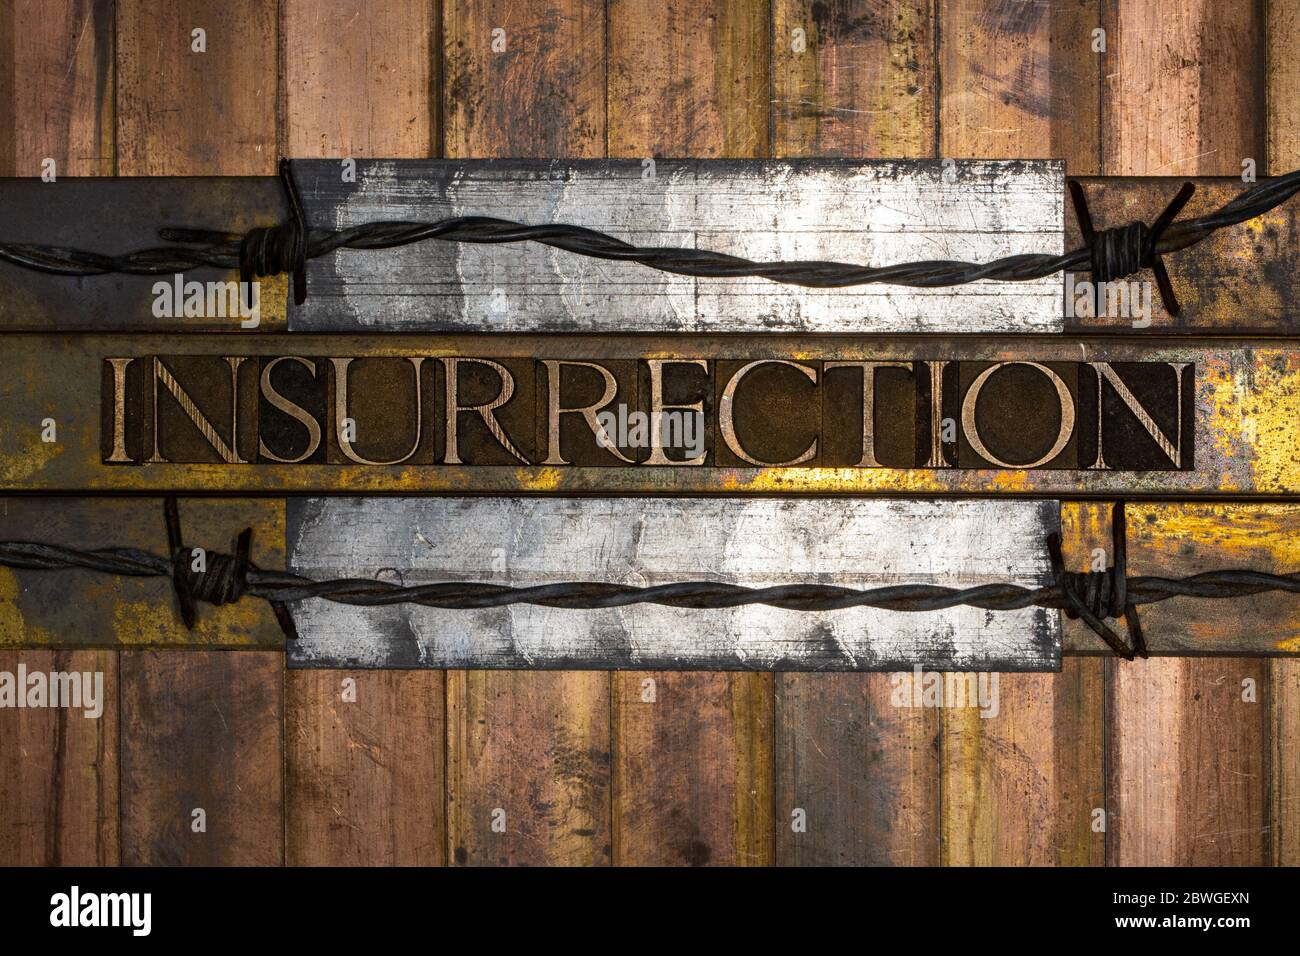 Photo of real authentic typeset letters forming Insurrection text with barbed wire on vintage textured silver grunge copper and gold background Stock Photo